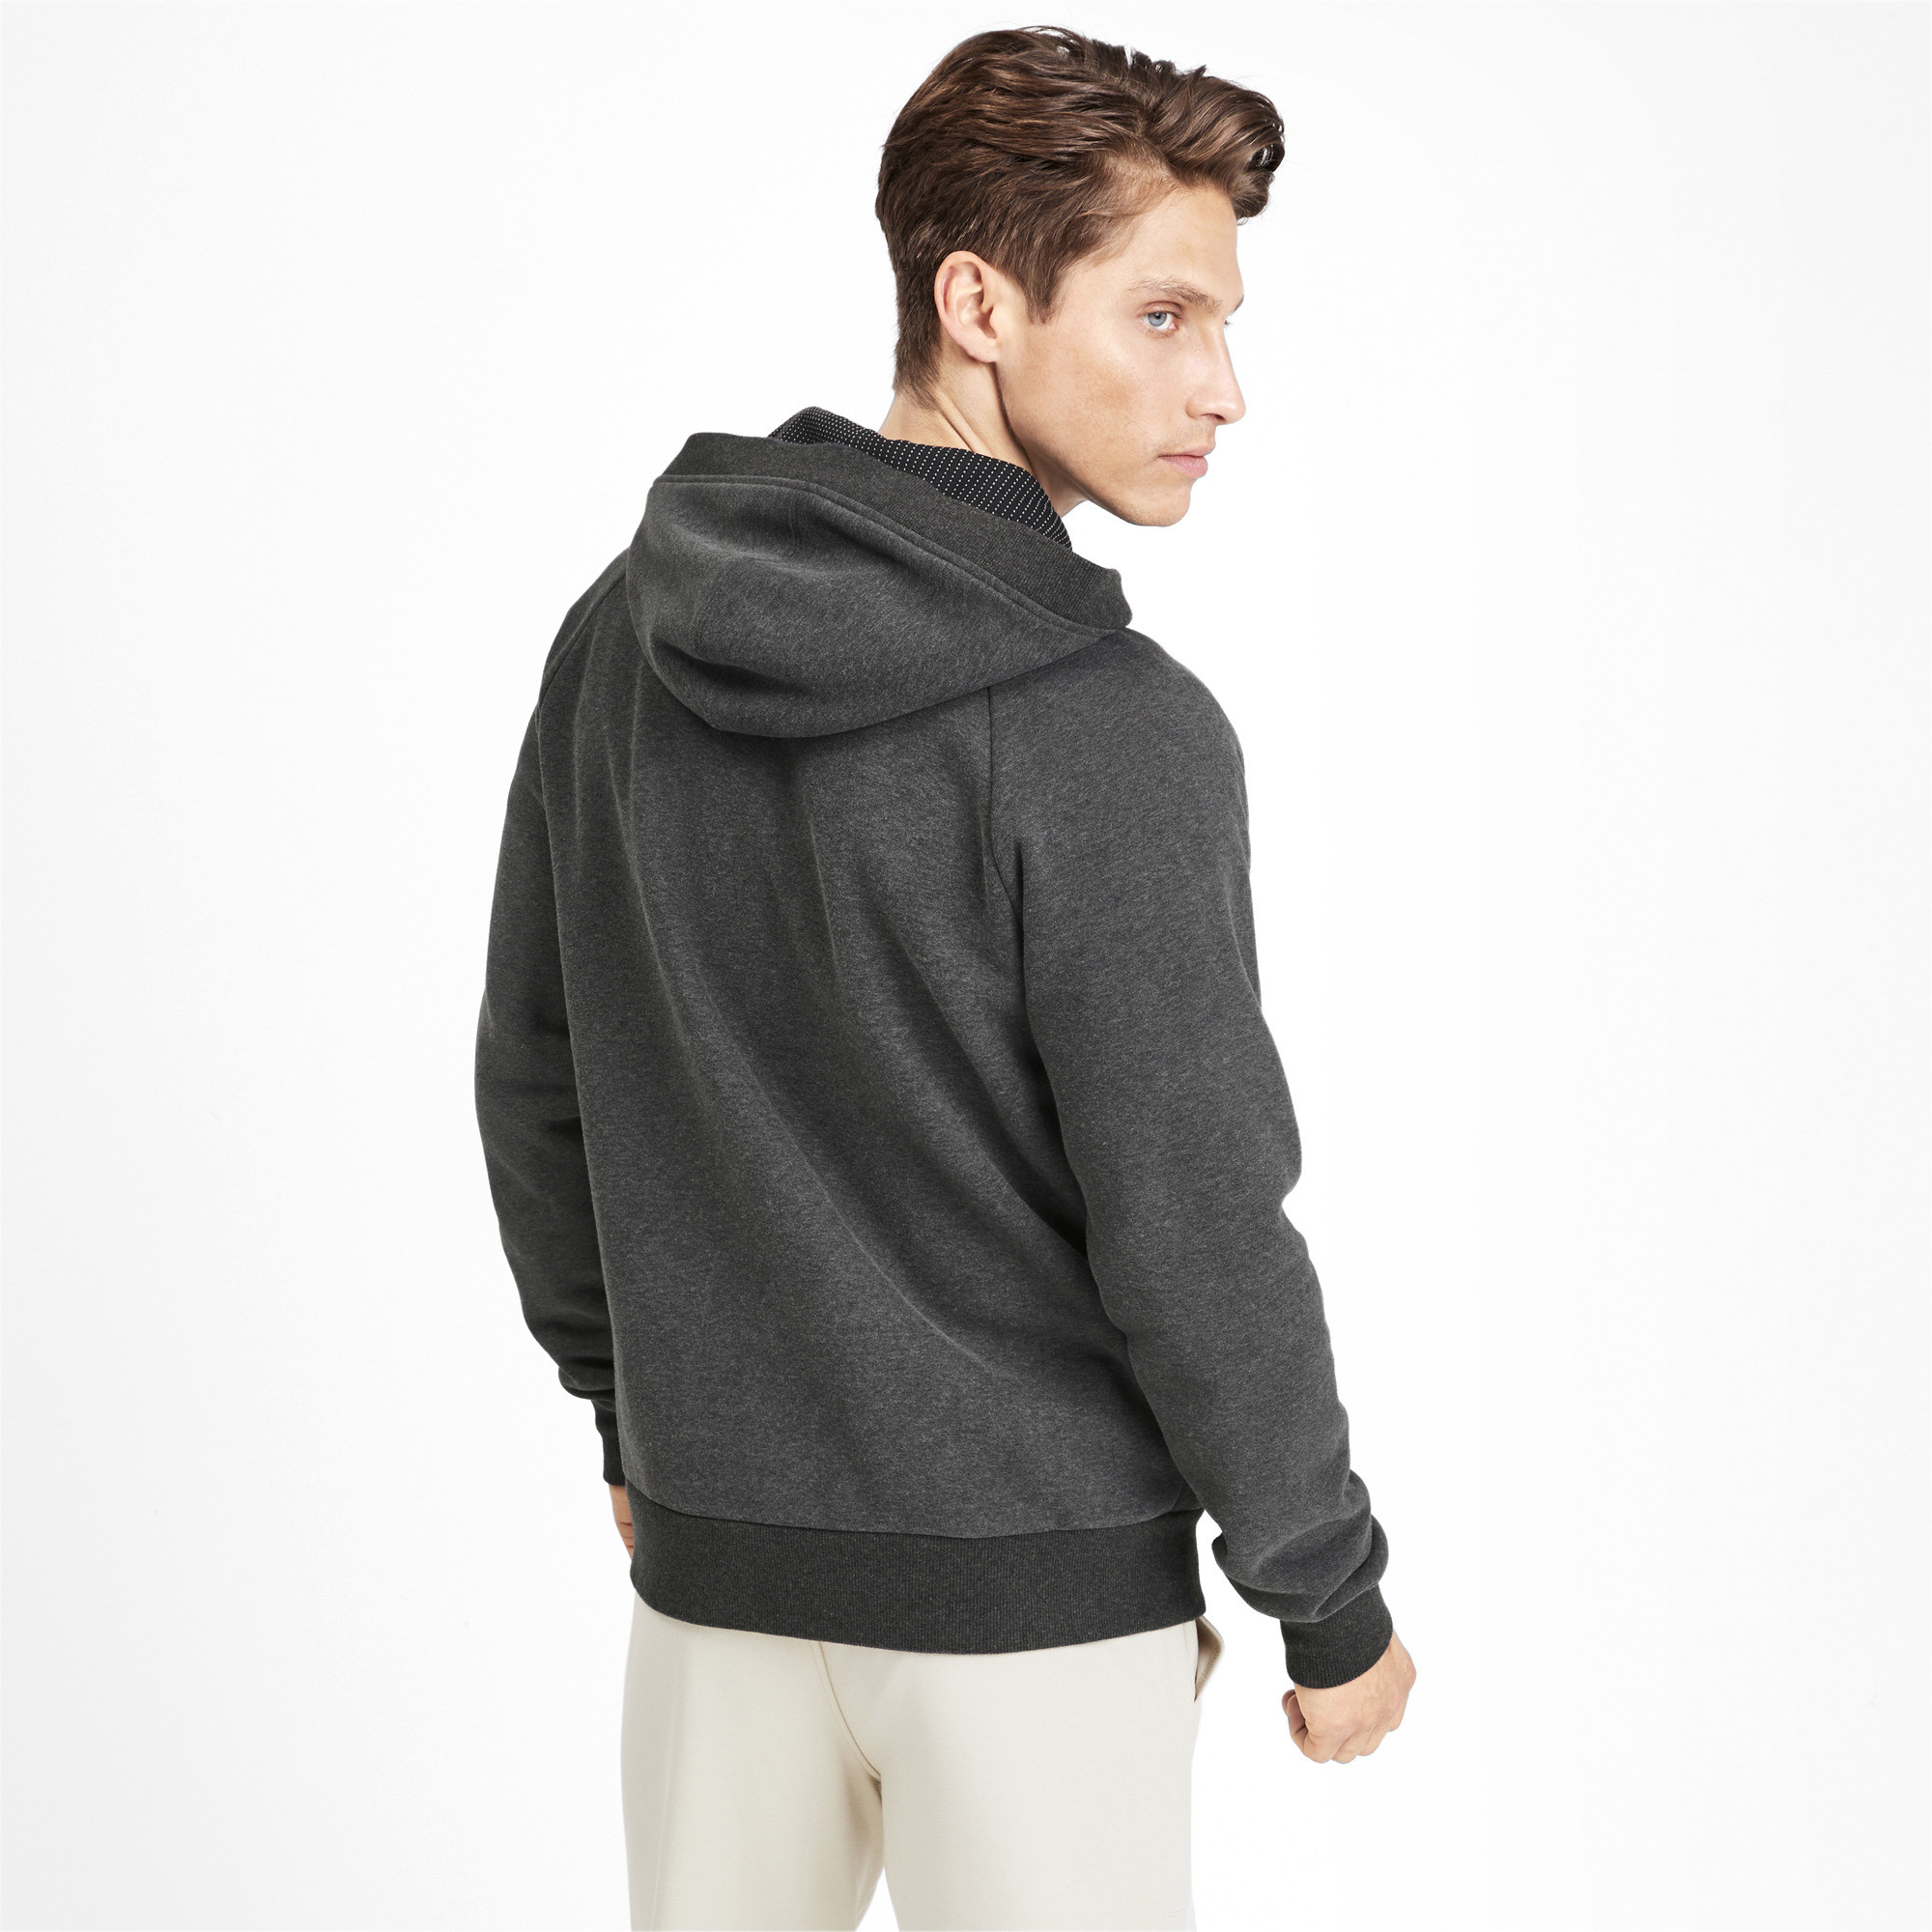 PUMA-Athletics-Men-039-s-Full-Zip-Fleece-Hoodie-Men-Sweat-Basics thumbnail 5